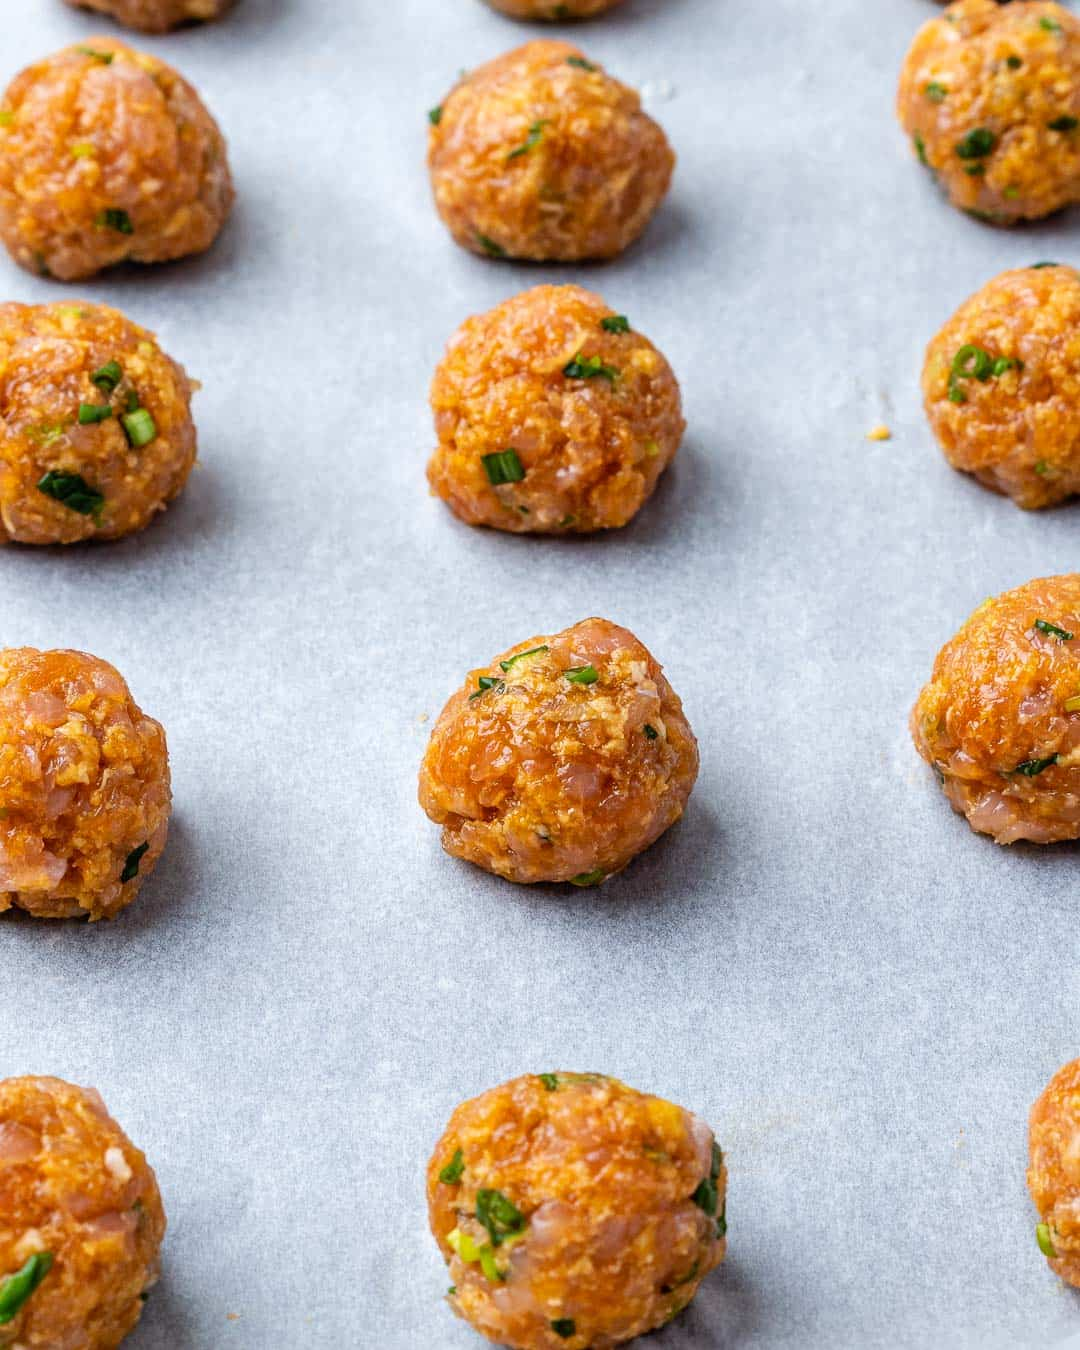 Formed meatballs on baking sheet before cooking.